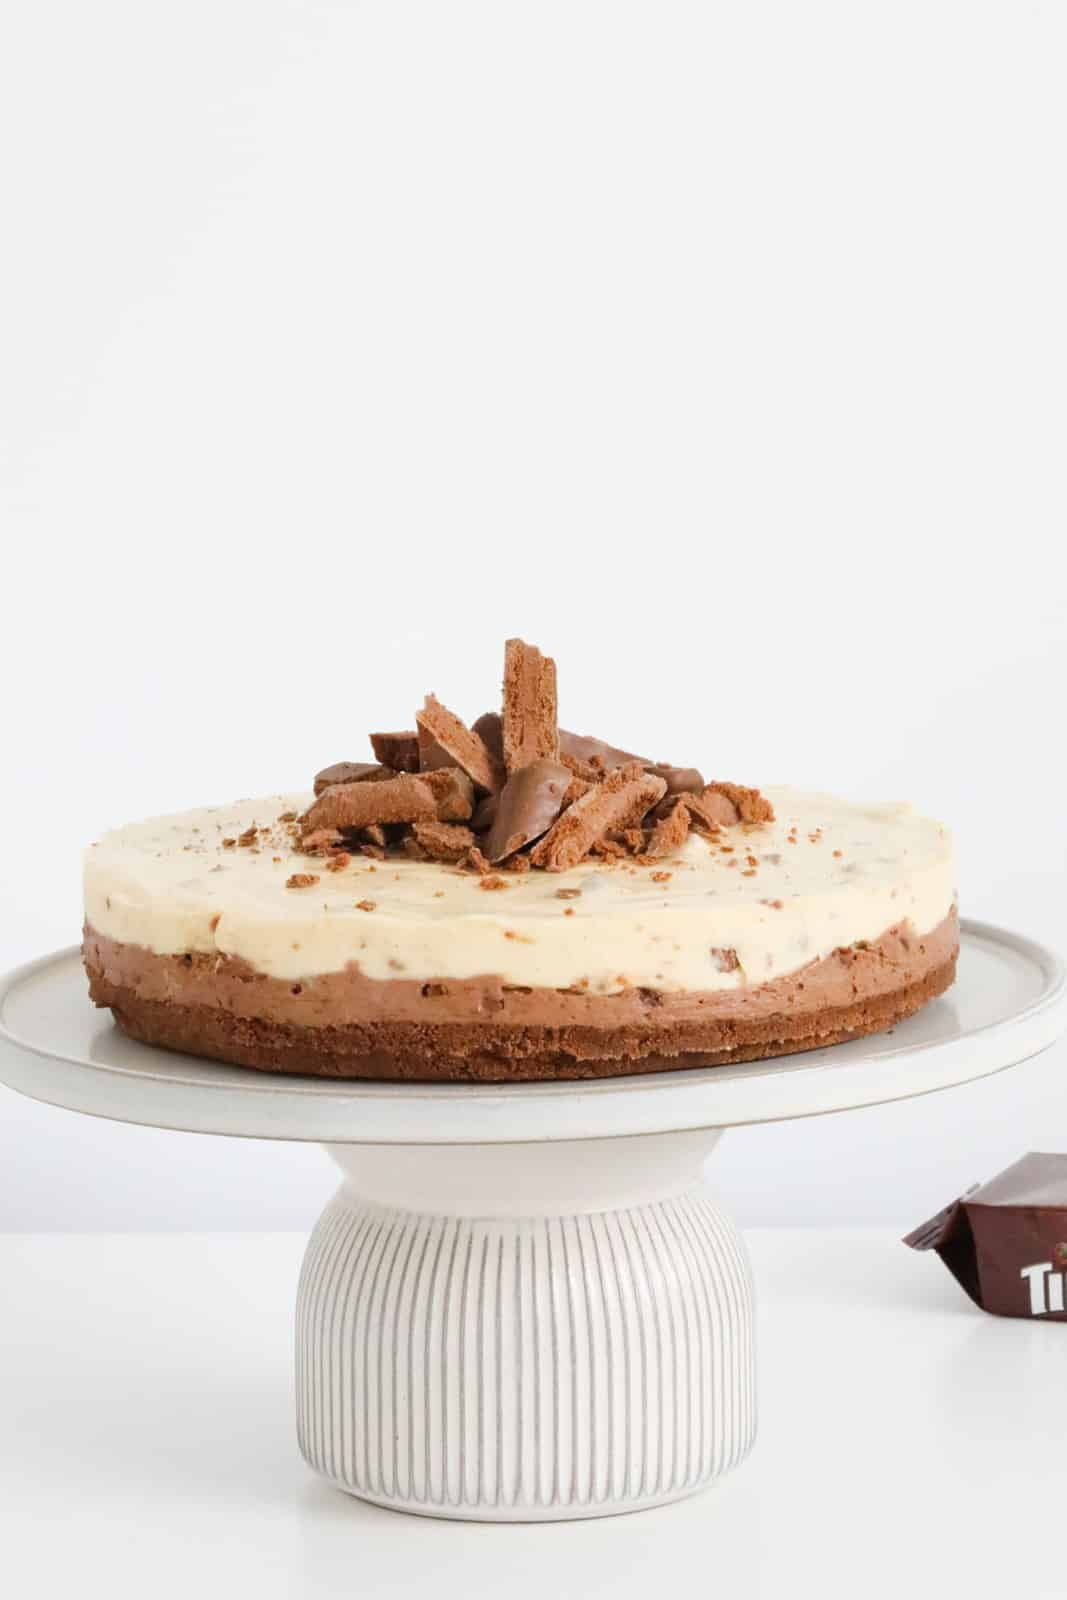 A double layered Tim Tam cheesecake on a cake stand.